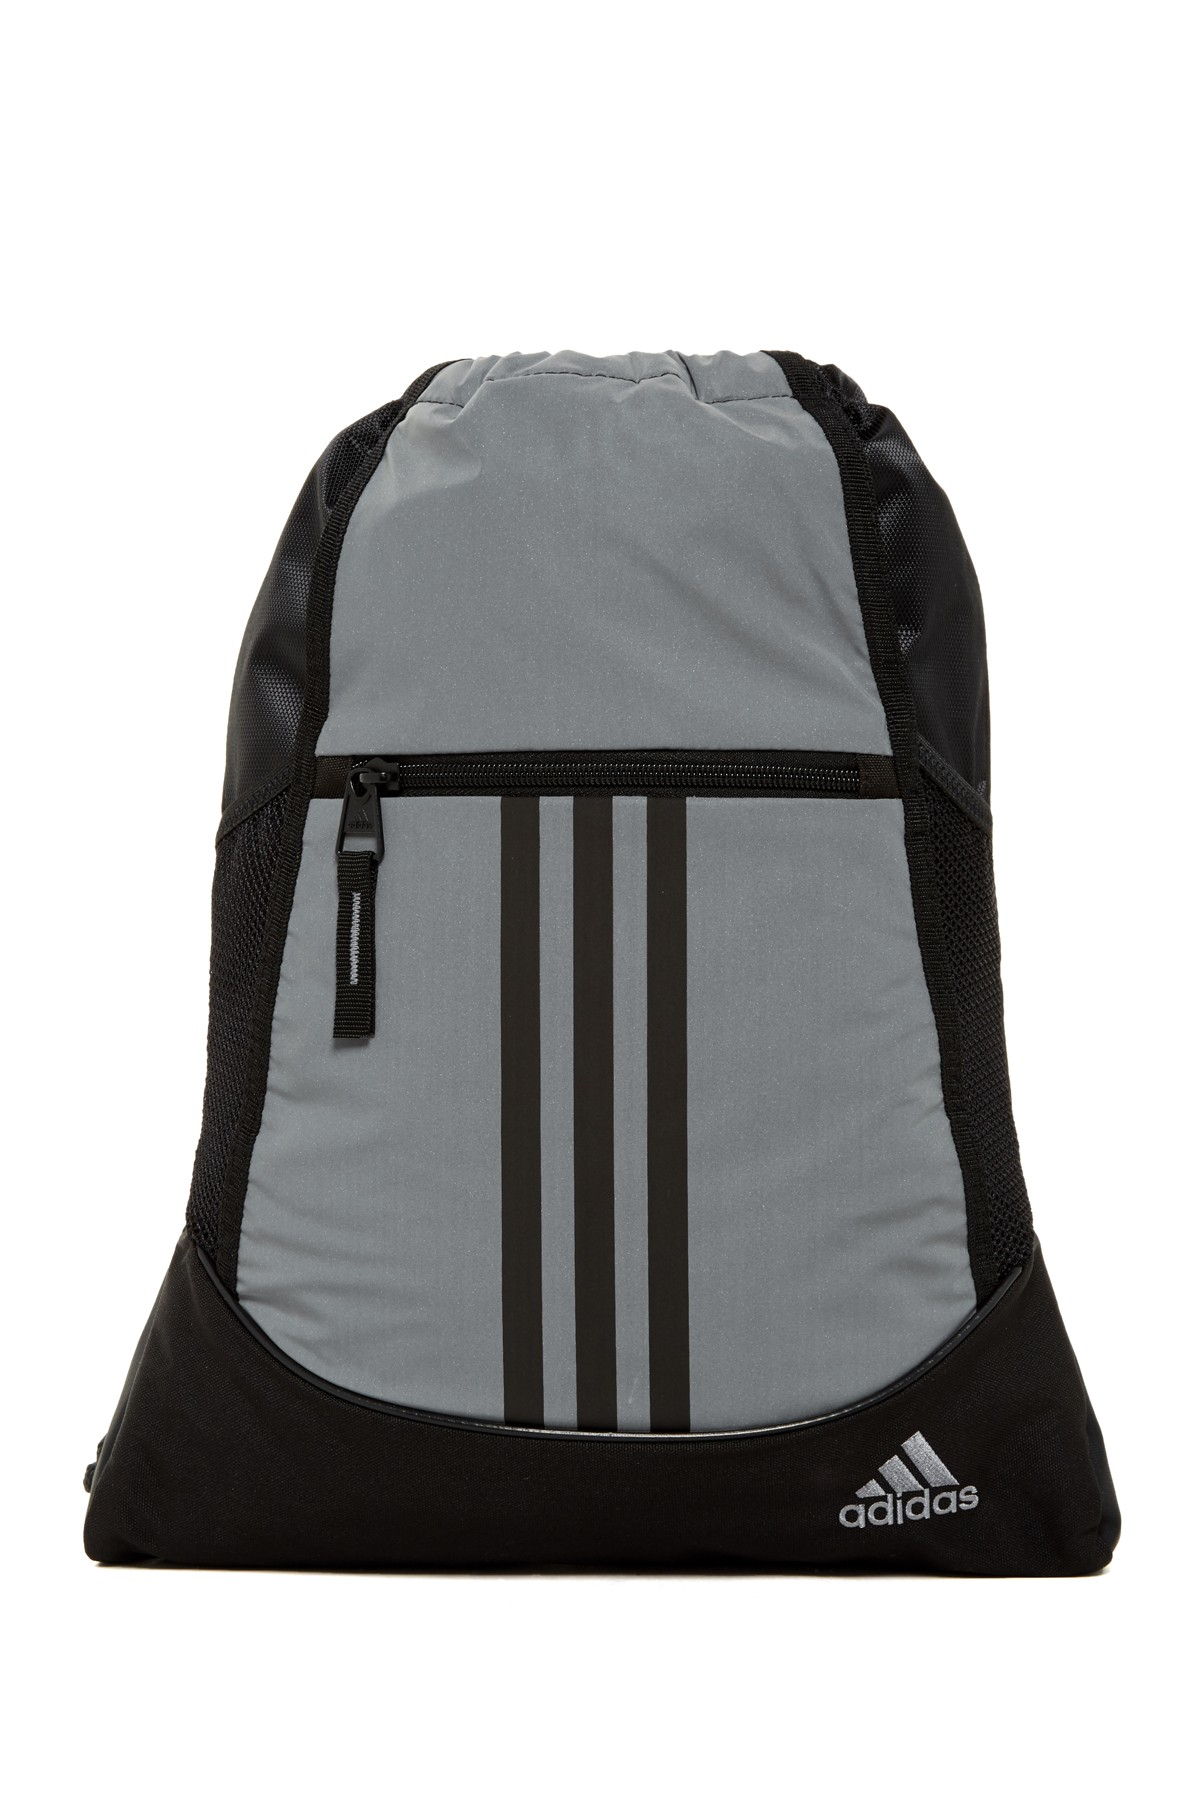 4c60fcc254 Lyst - Adidas Originals Alliance Ii Reflective Sackpack in Black